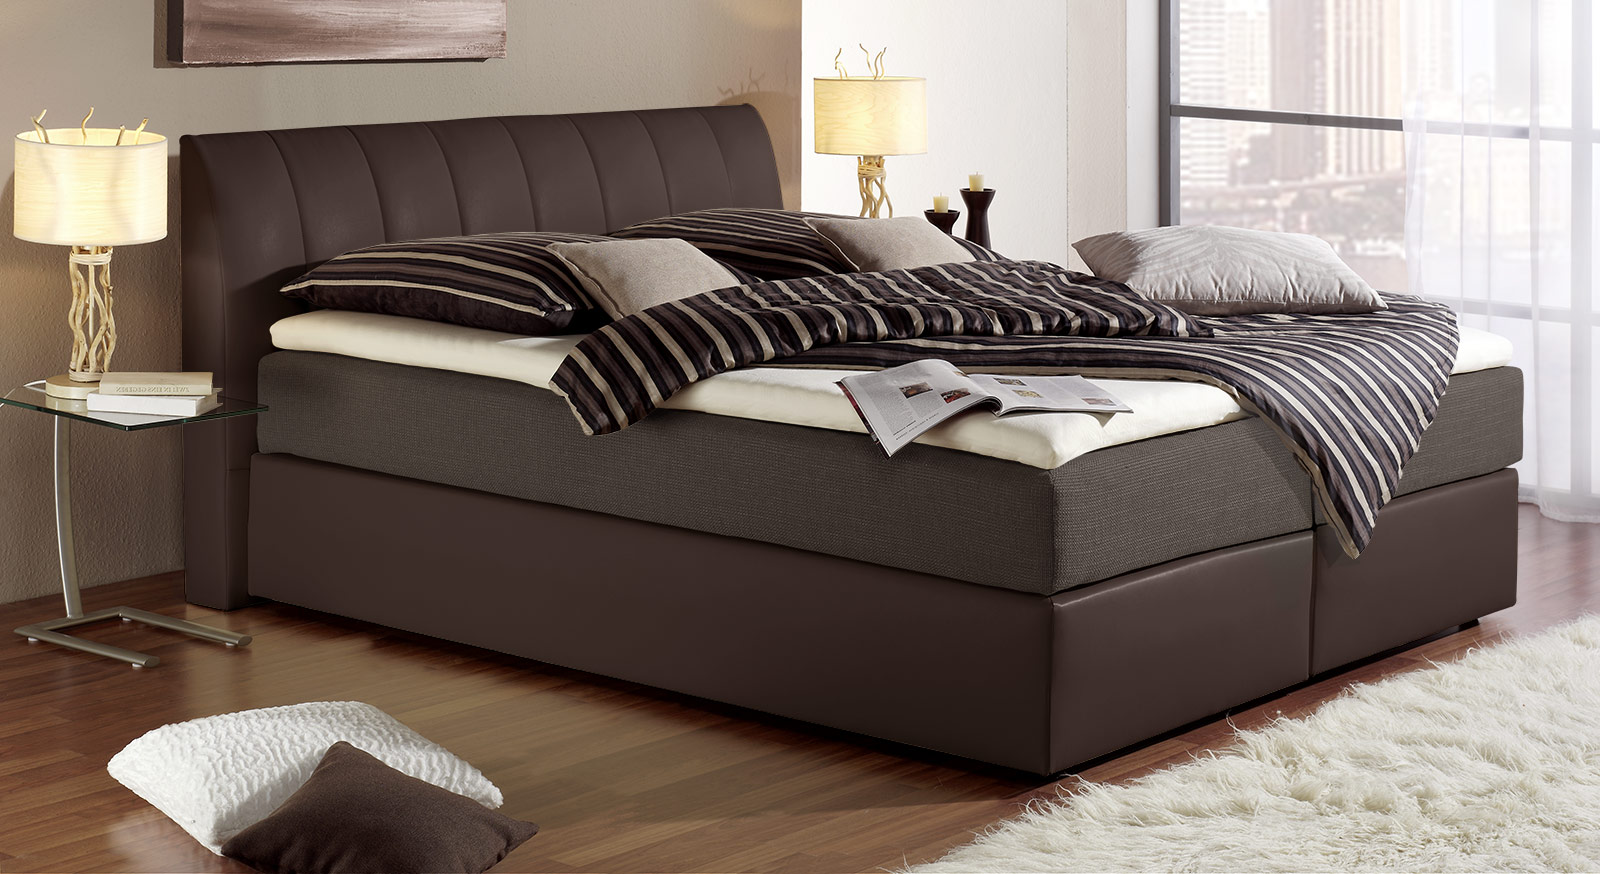 Ikea Bed Box Spring